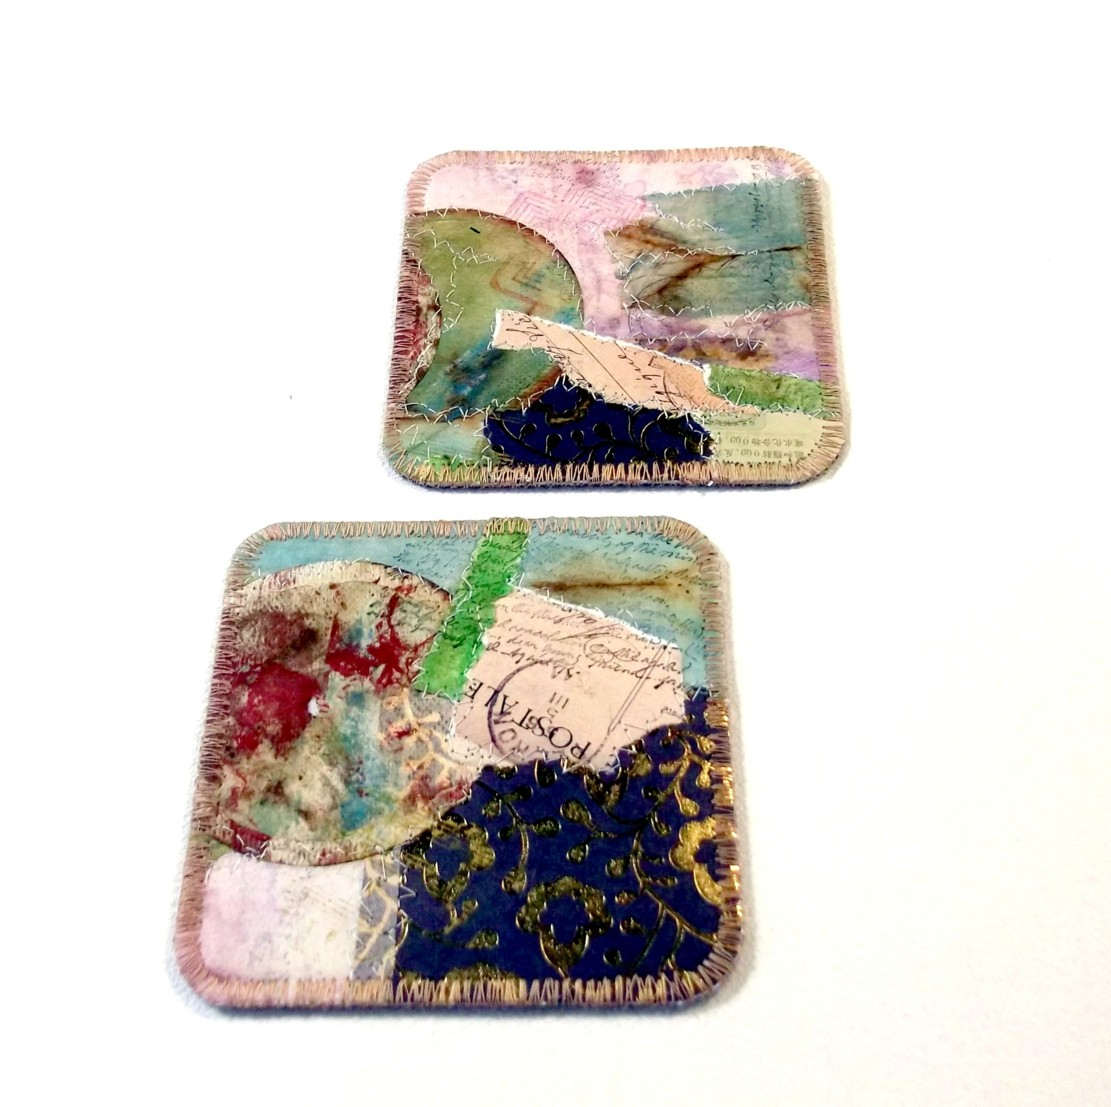 Mixed media stitched coasters